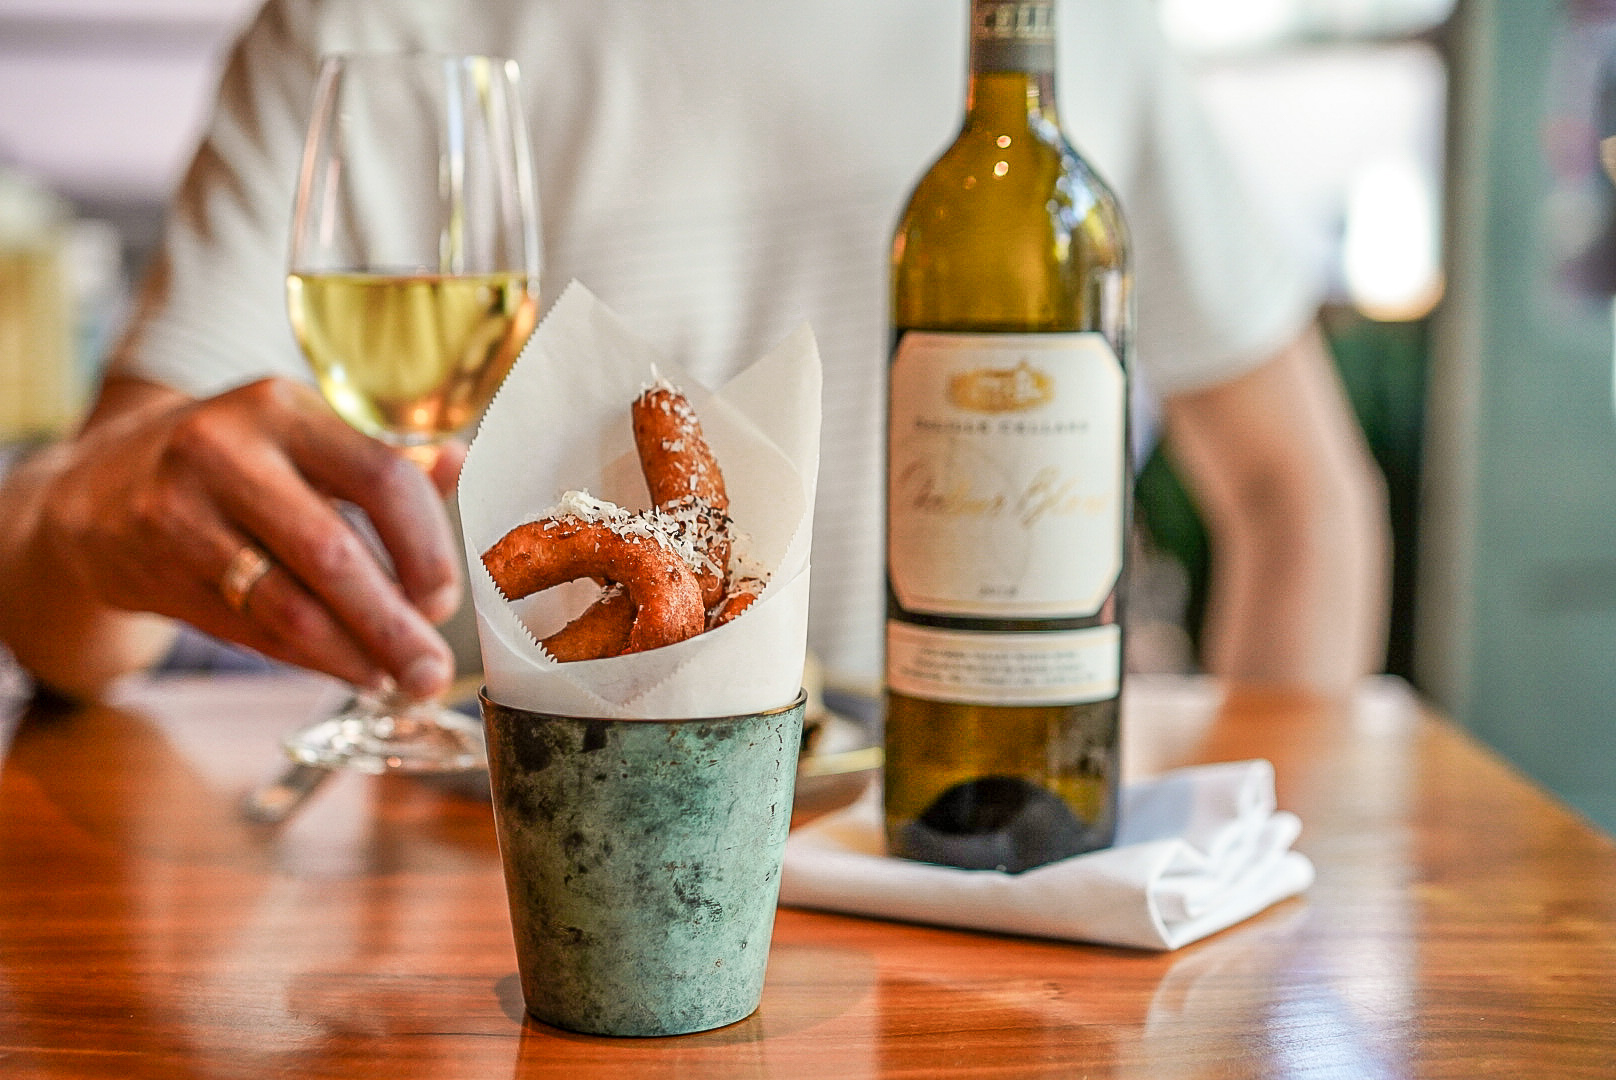 A wooden table with a metal cup lined with parchment paper and holding onion rings, a bottle of wine, and a glass of white wine. A hand holds the glass and a torso is out of focus behind the table.